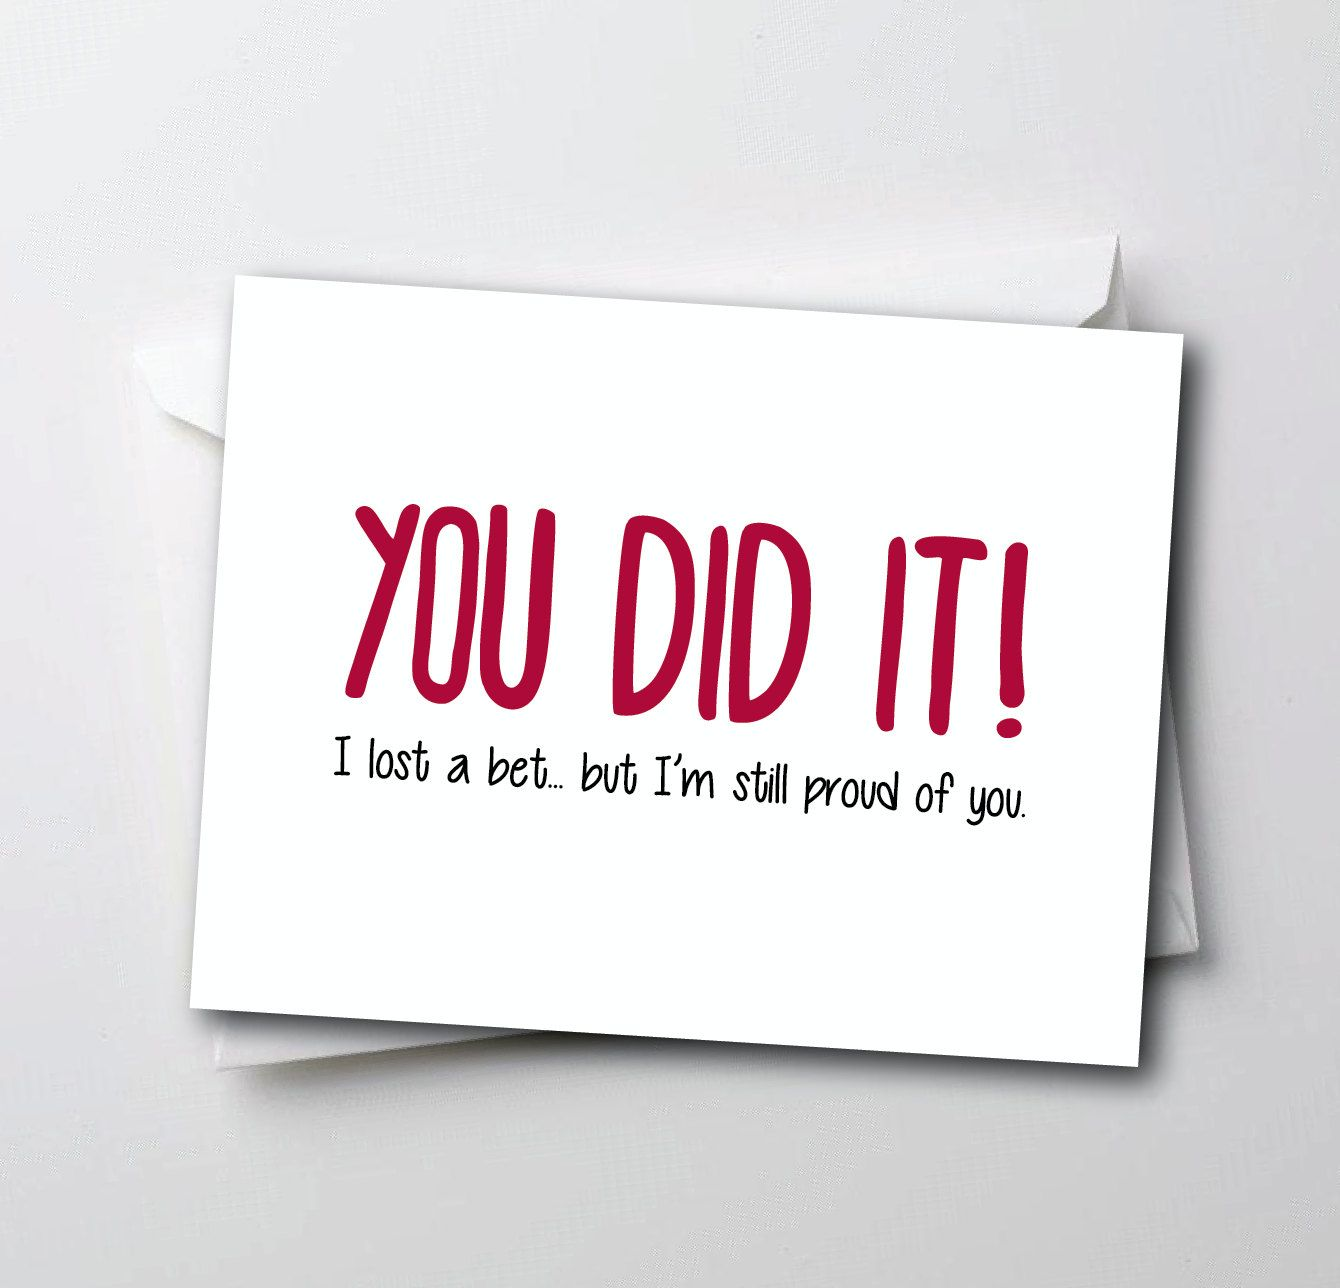 Funny Congratulations Card You Did It I Lost A Bet But I 39 M Still Proud Of You Funny Congratulations Cards Congratulations Card Cards